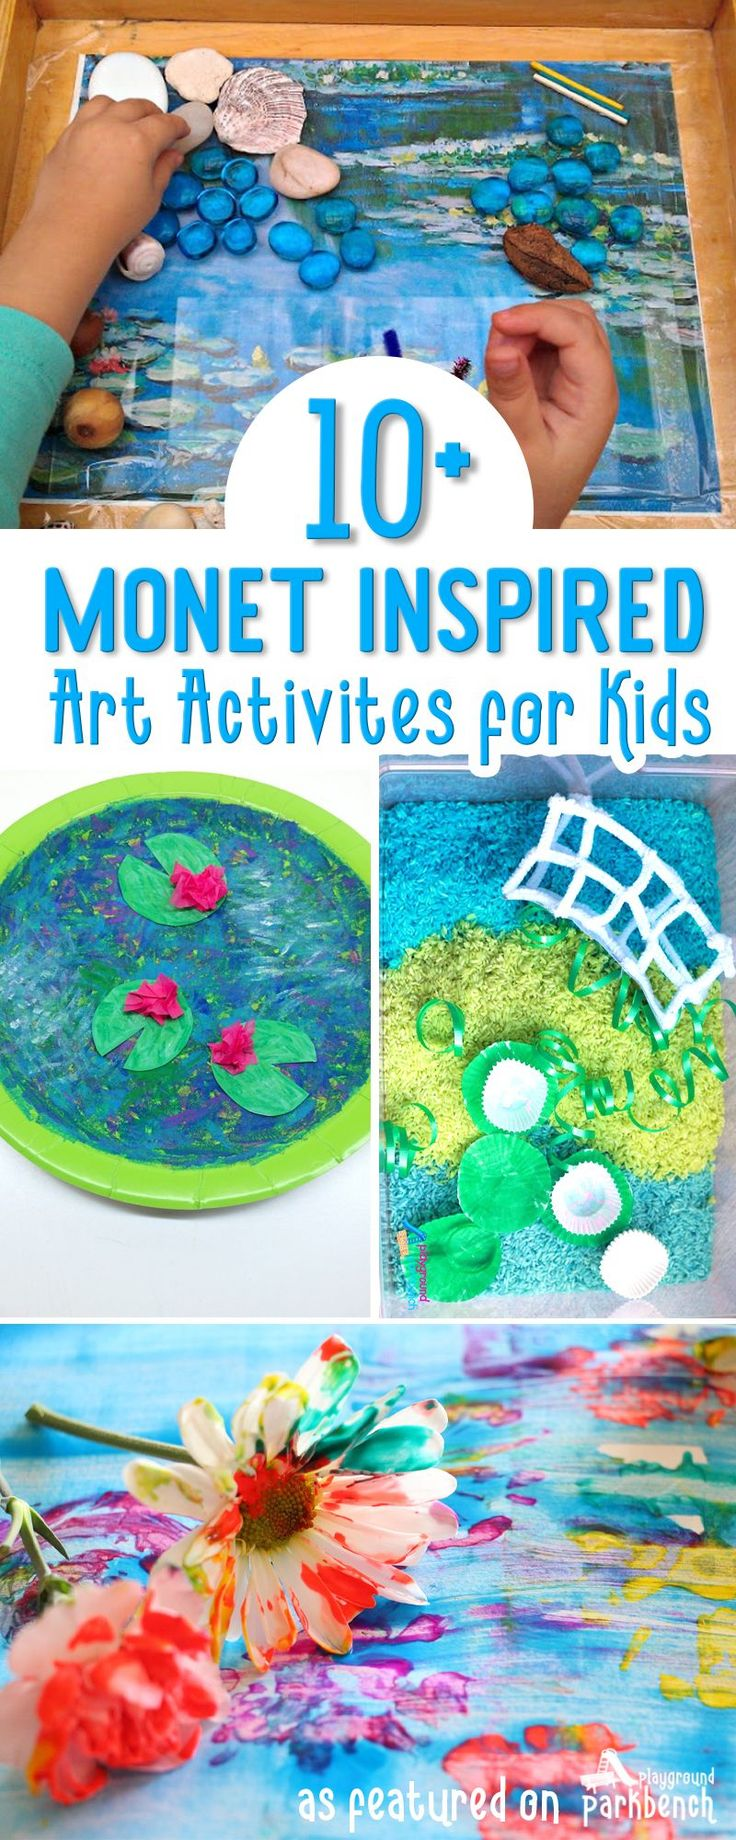 Monet Art for Kids of all ages. Using different techniques (resist, finger painting, collage, and more), and Impressionist works by Monet, kids of all ages, from toddlers and preschoolers, to elementary age artists, will be inspired to create these fun works of art via @playgroundpb